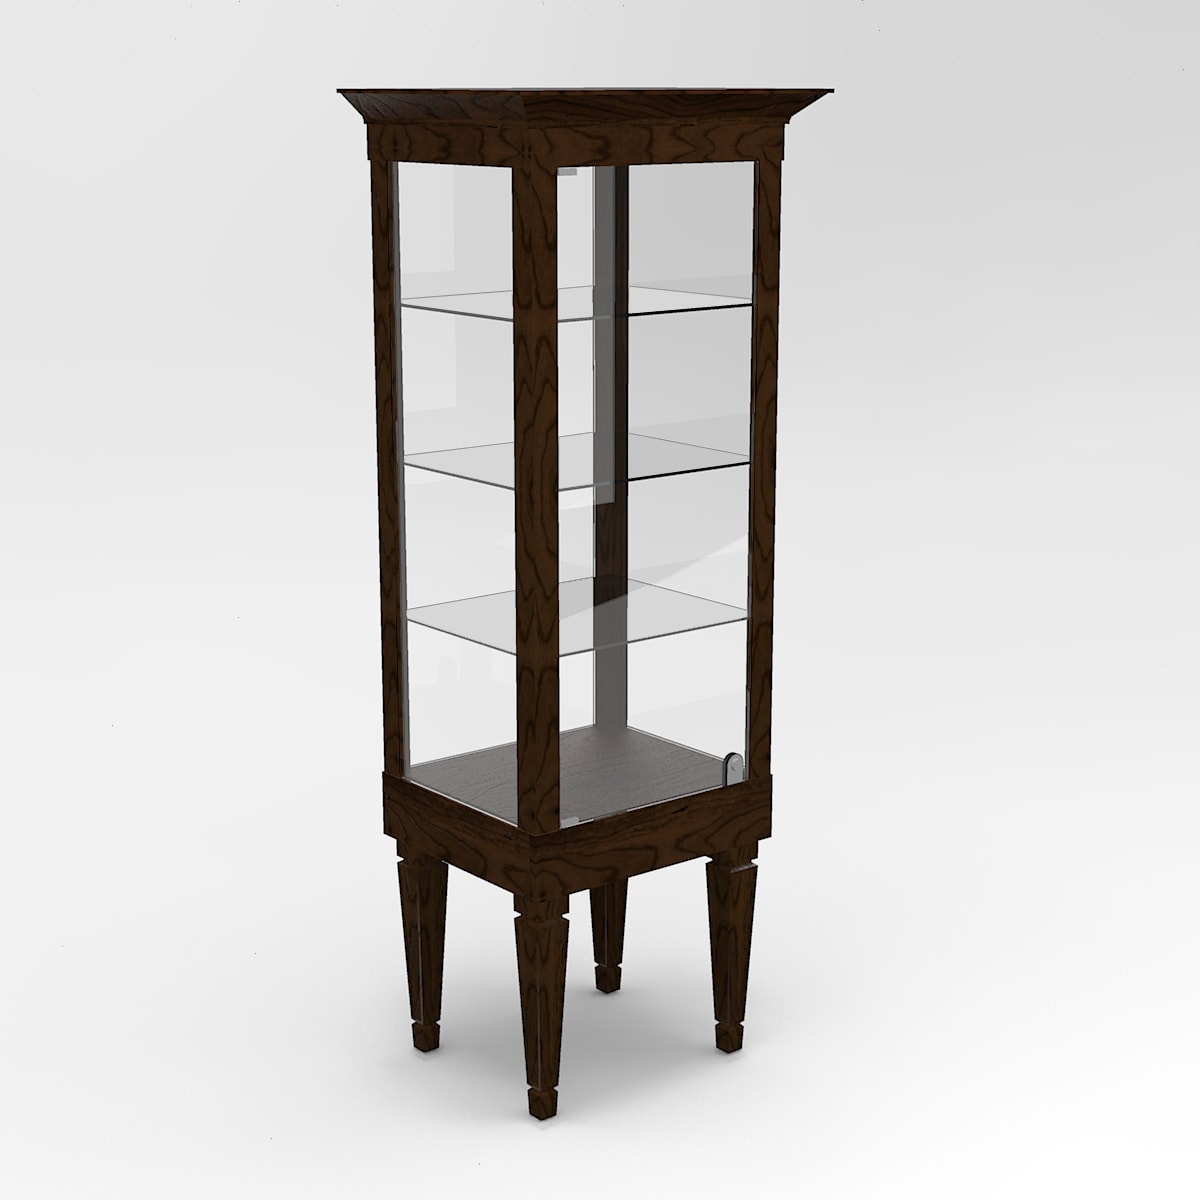 Narrow Executive Leg Rectangle Tower Display Case To Purchase